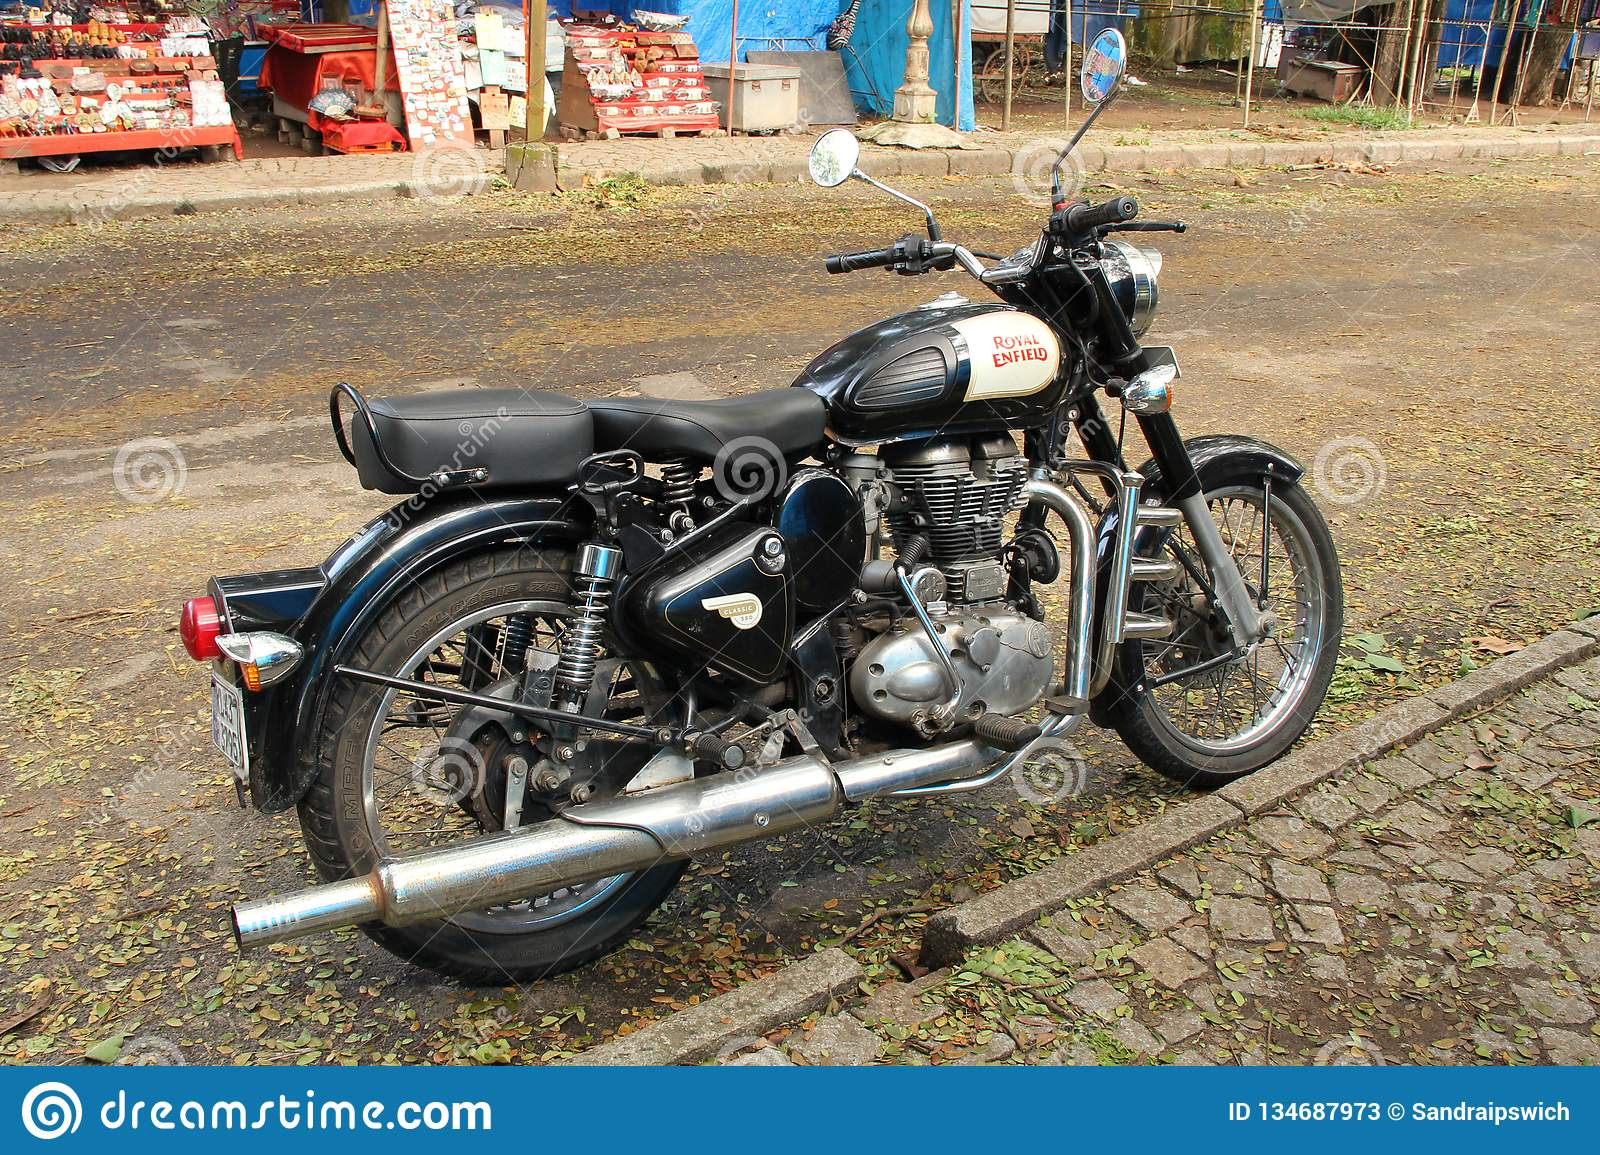 2 119 Royal Enfield Photos Free Royalty Free Stock Photos From Dreamstime ✅ scegli la consegna gratis per riparmiare di più. https www dreamstime com royal enfield bullet royal enfield indian motorcycle manufacturing brand tag oldest global motorcycle brand image134687973